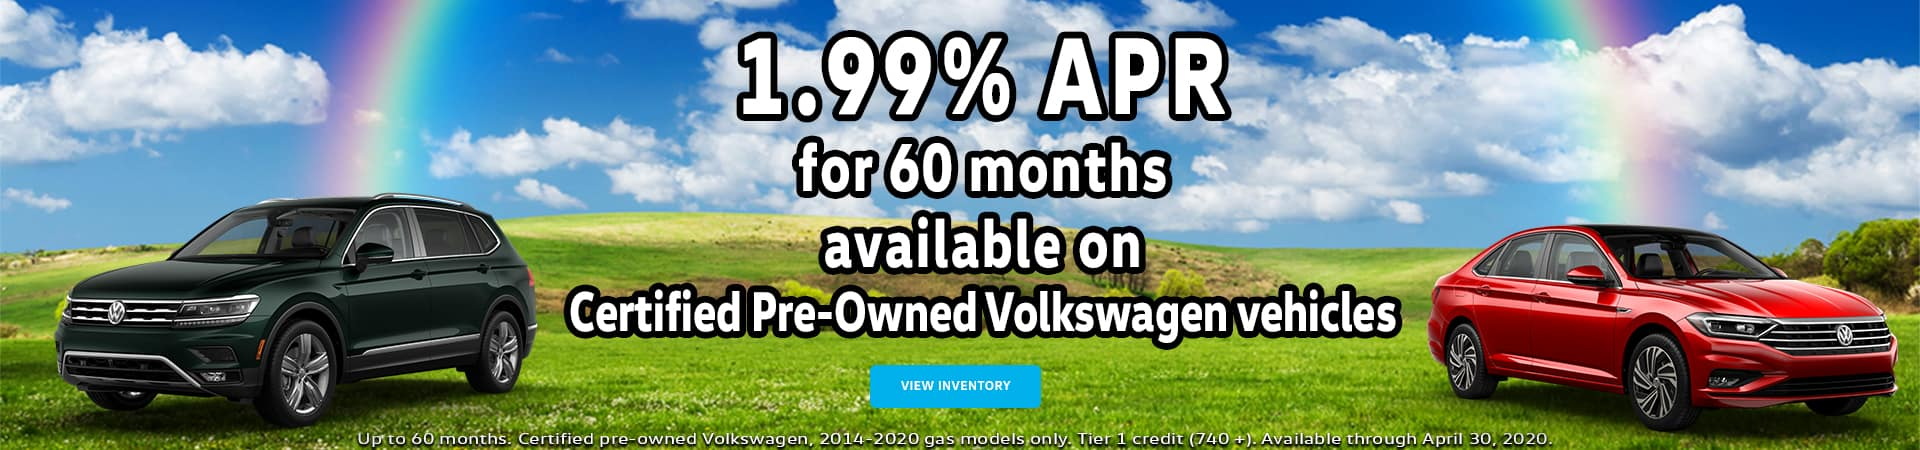 1.99% APR for 60 months available on Certified Pre-Owned Volkswagen vehicles